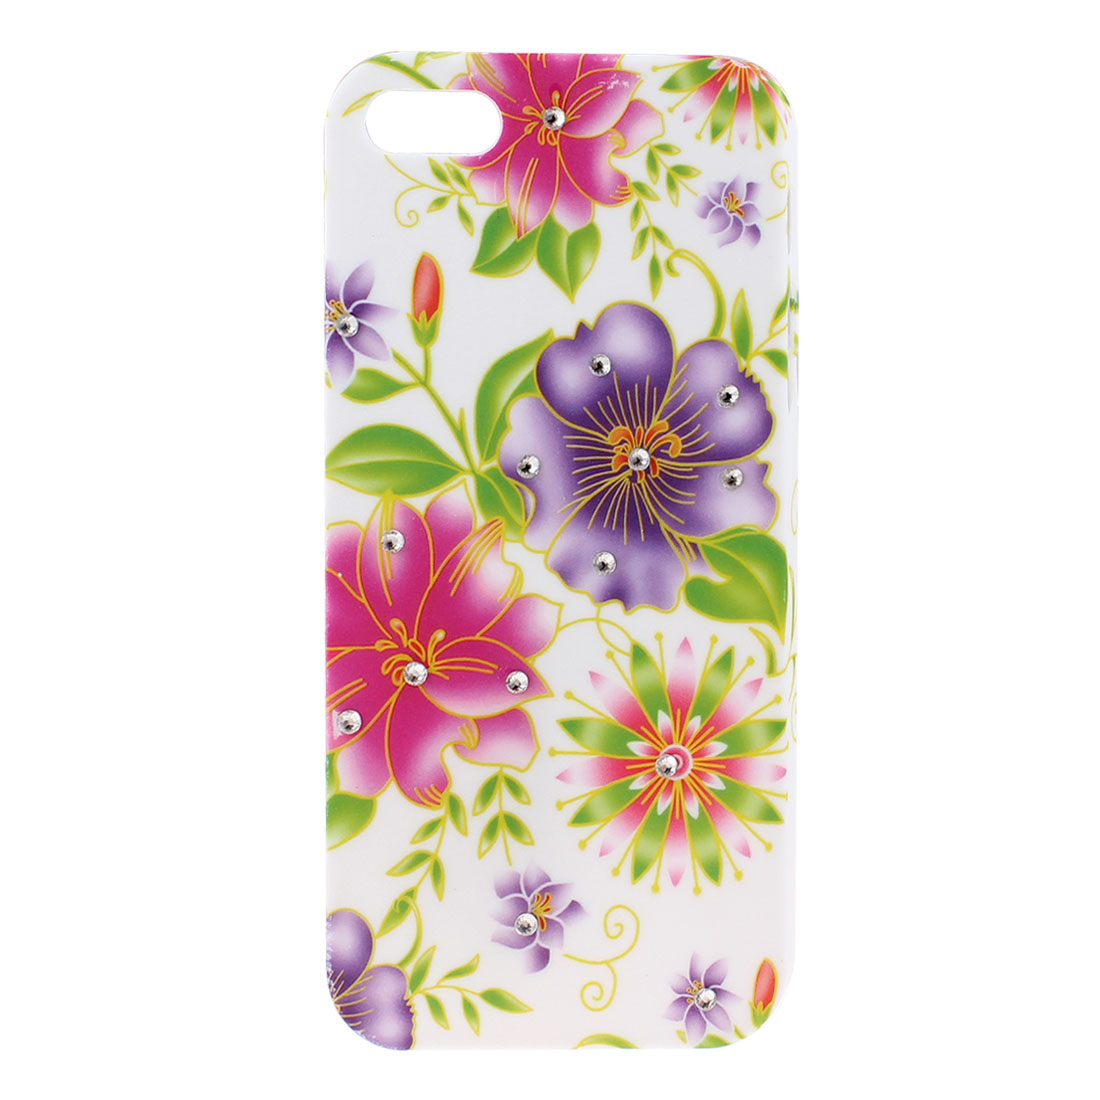 Glitter Rhinestone Inlaid Multicolor Flower Back Case Cover White for iPhone 5 5G